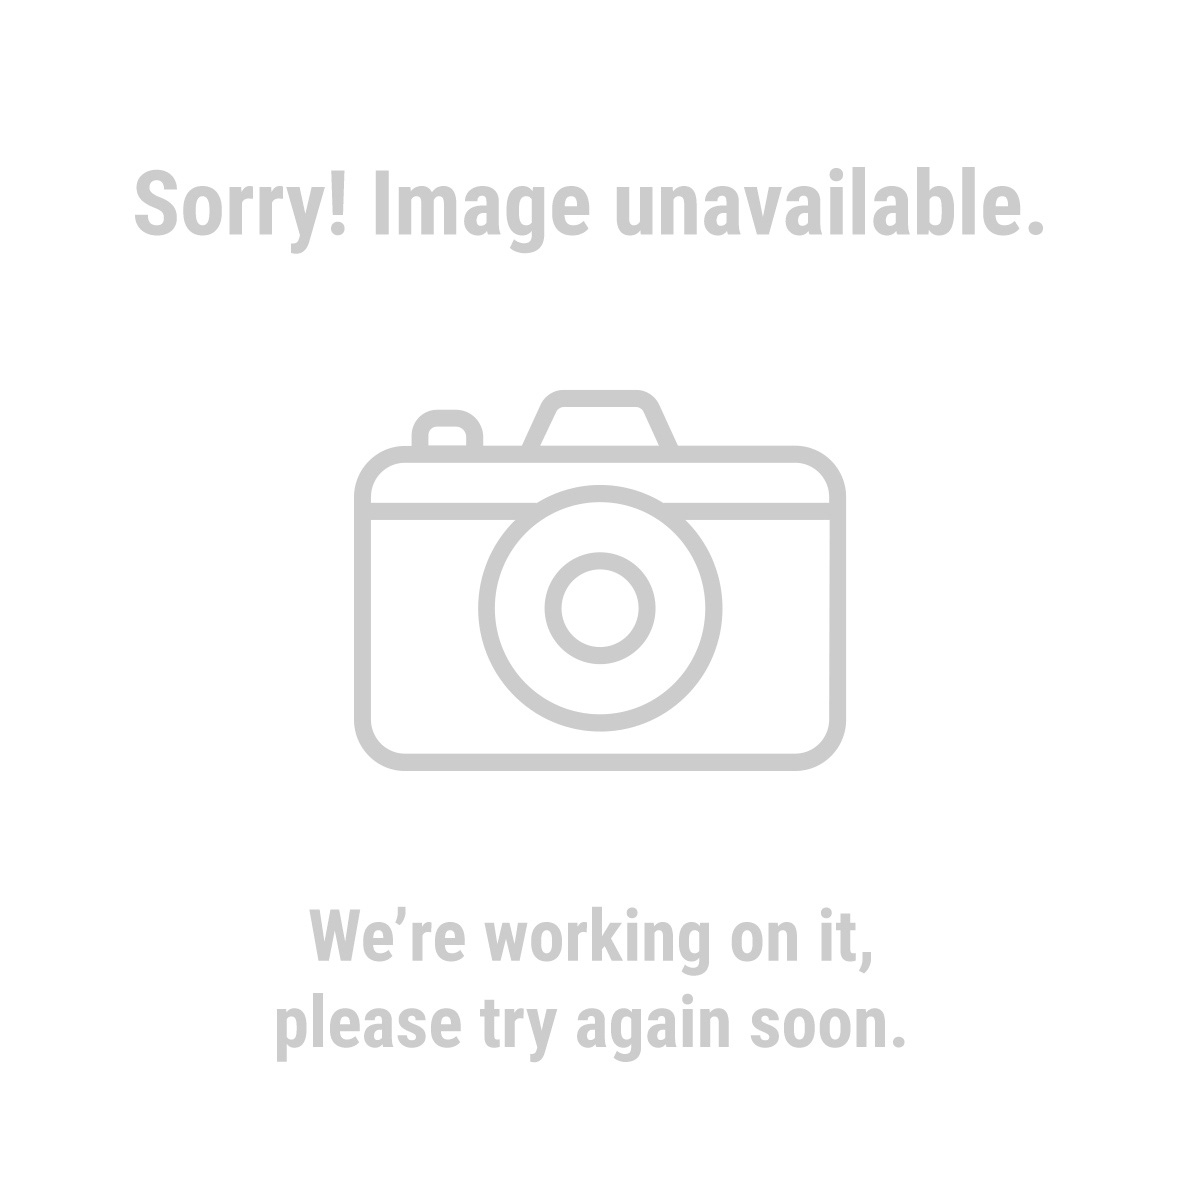 Central Machinery 42806 Quick Change Tool Post Set for Mini Lathe